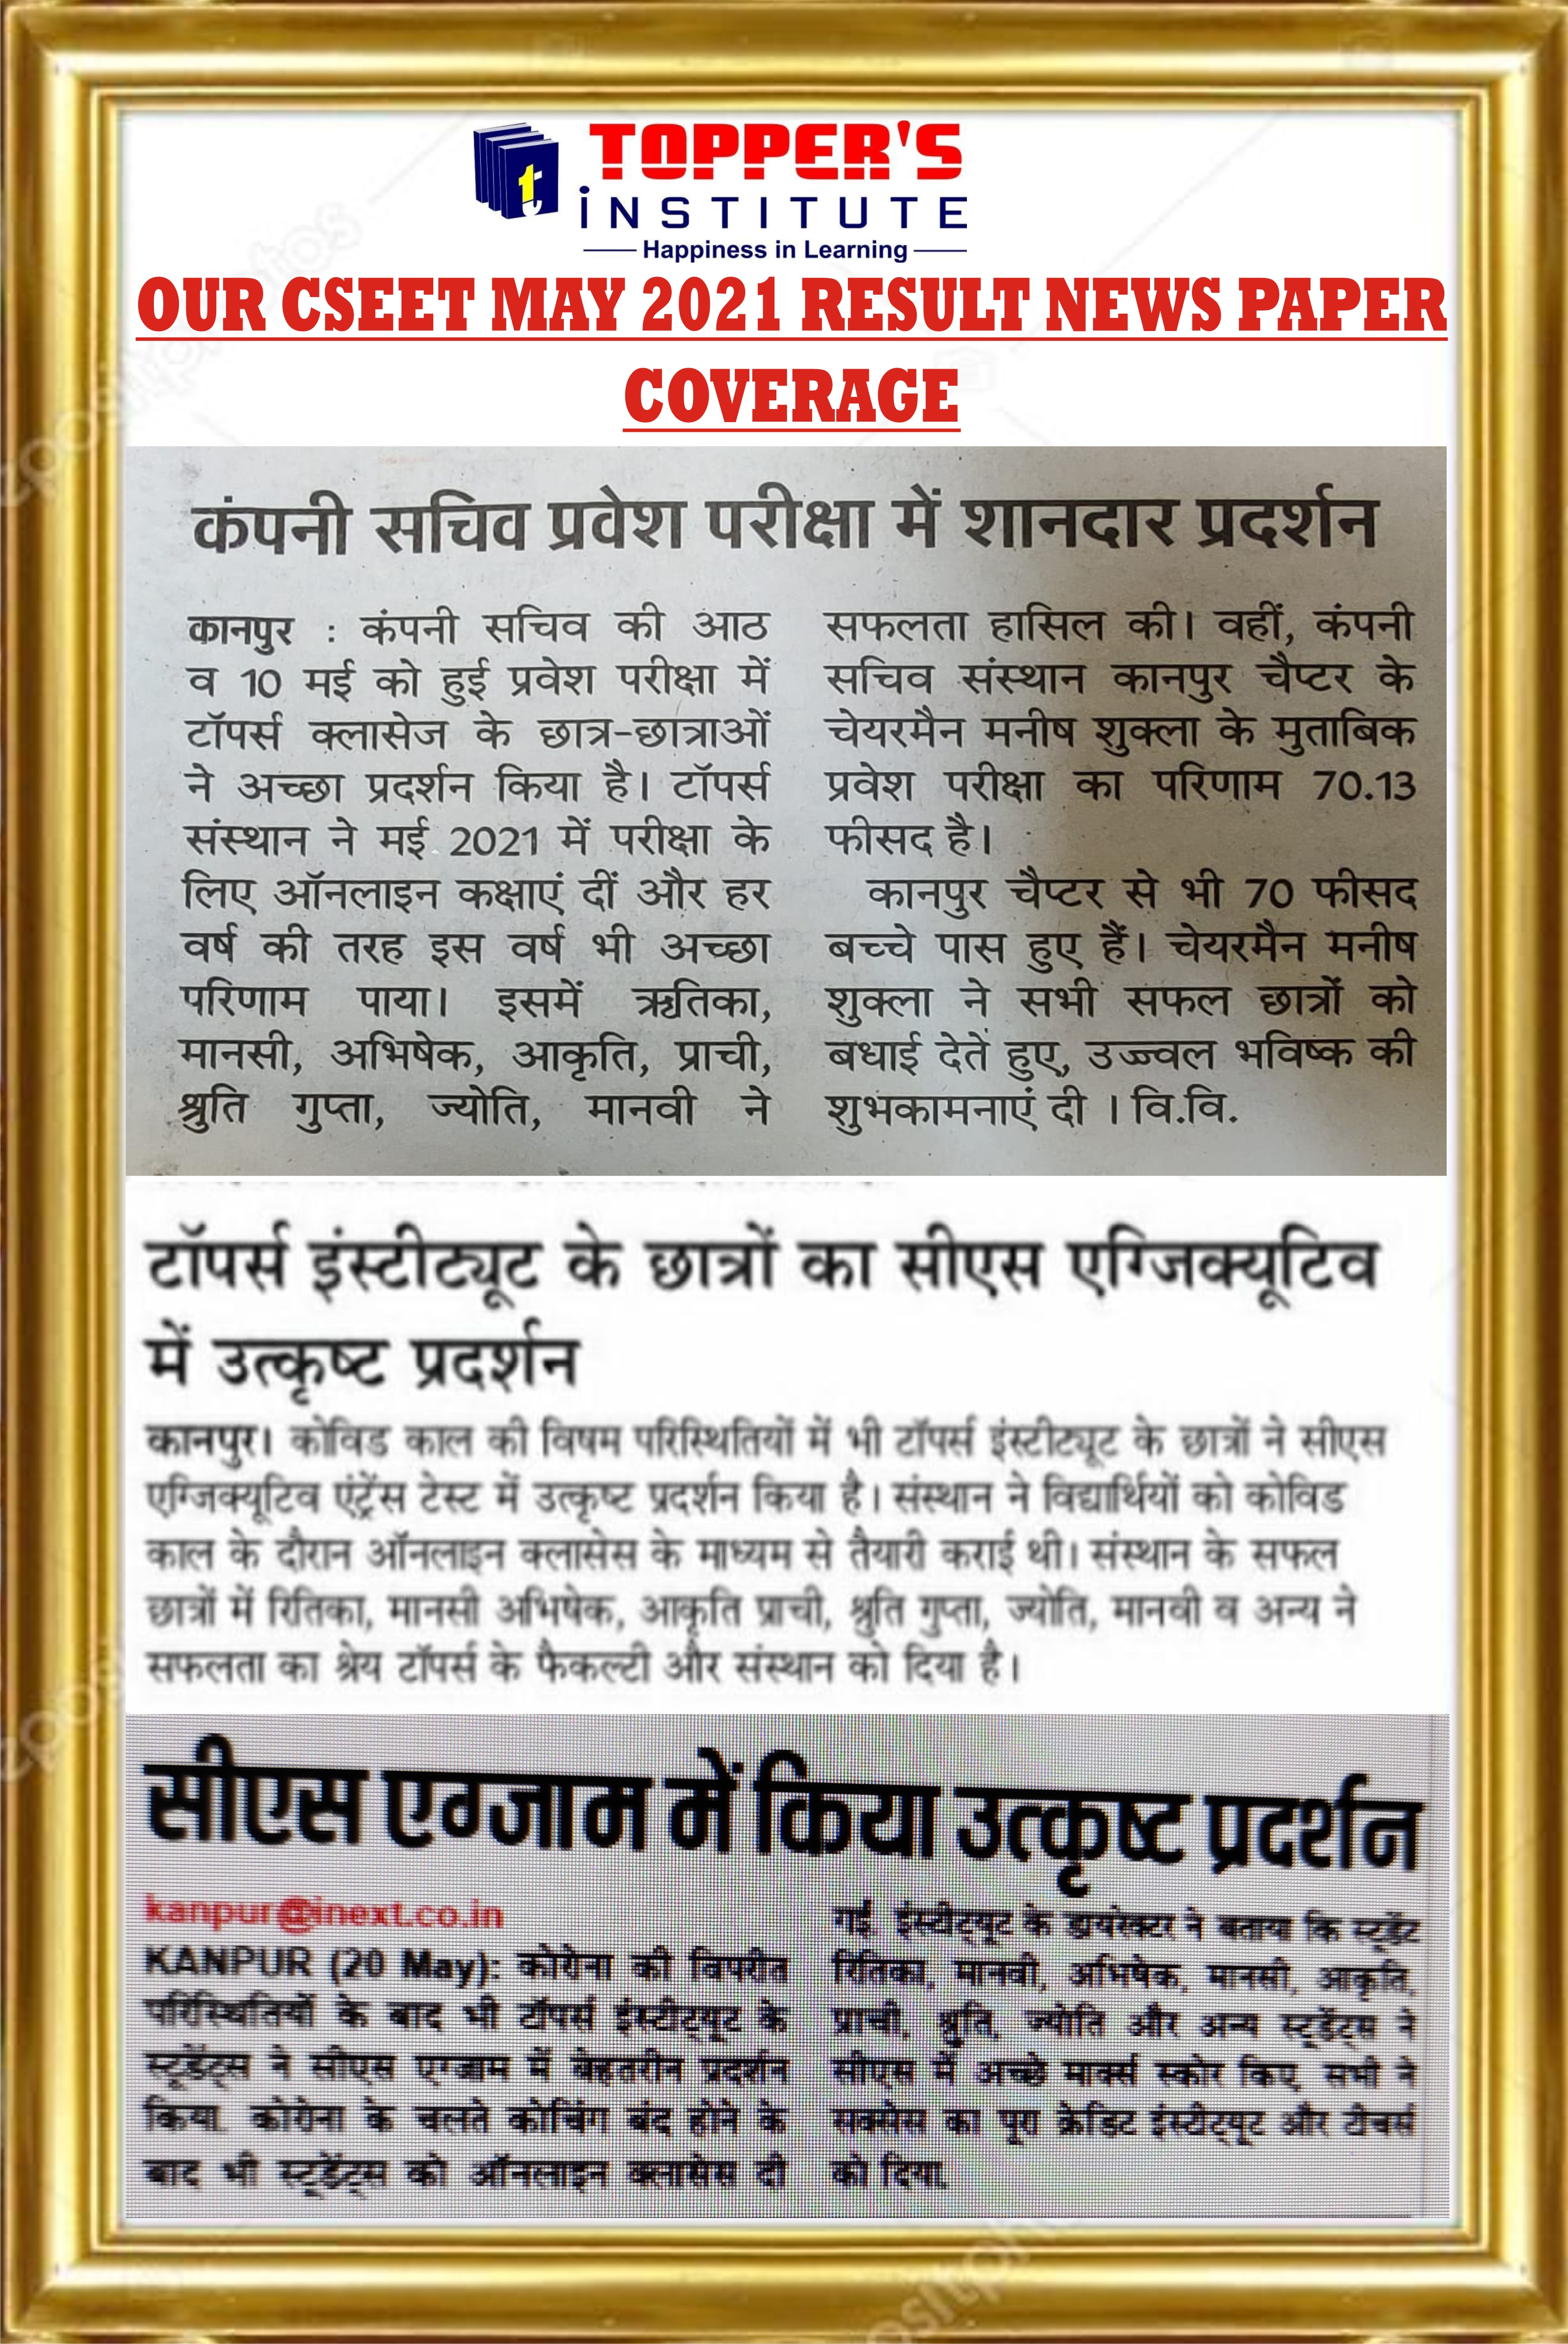 CSEET MAY 2021 NEWS HEADLINES ABOUT TOPPERS INSTITUTE KANPUR